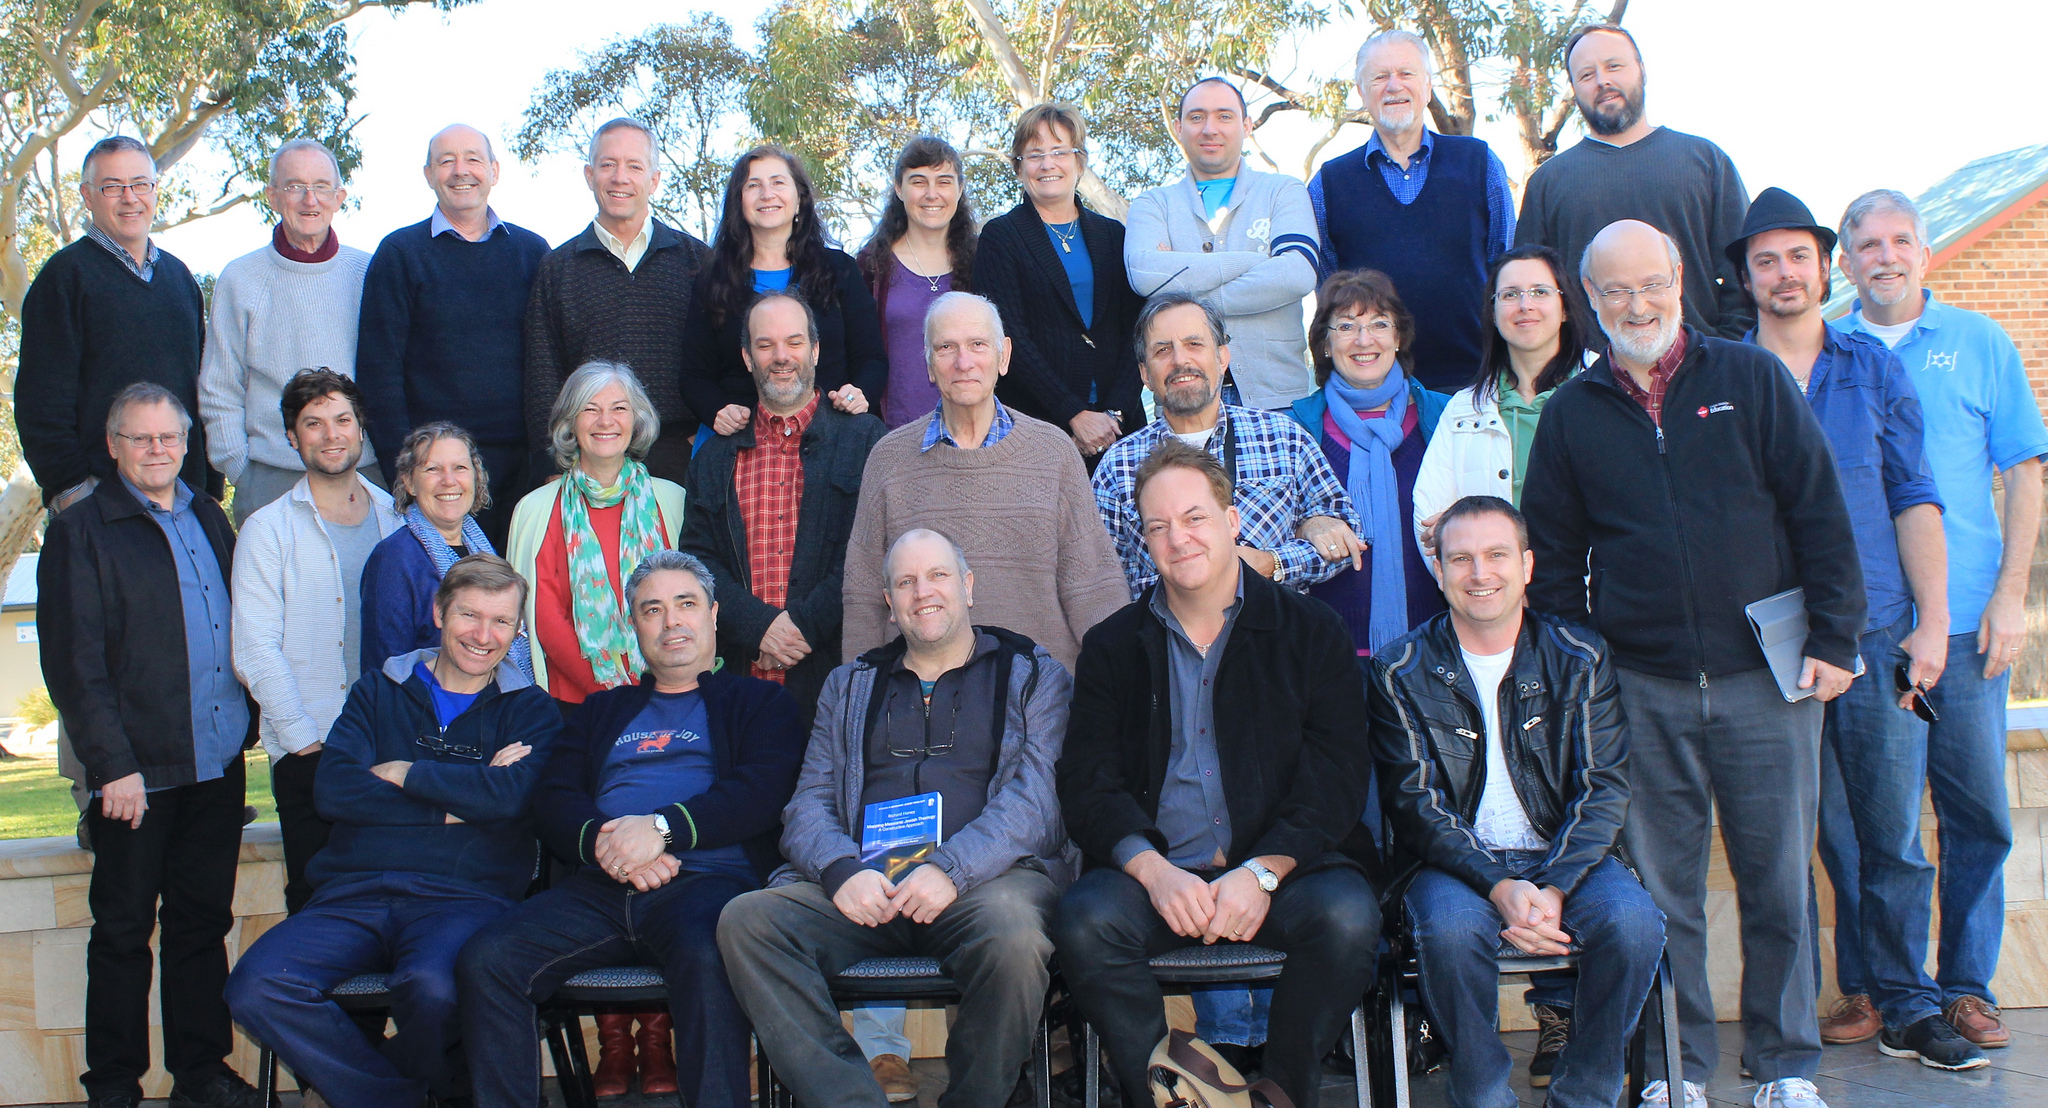 Group photo of Fourth AustralAsia Conference - July 2014